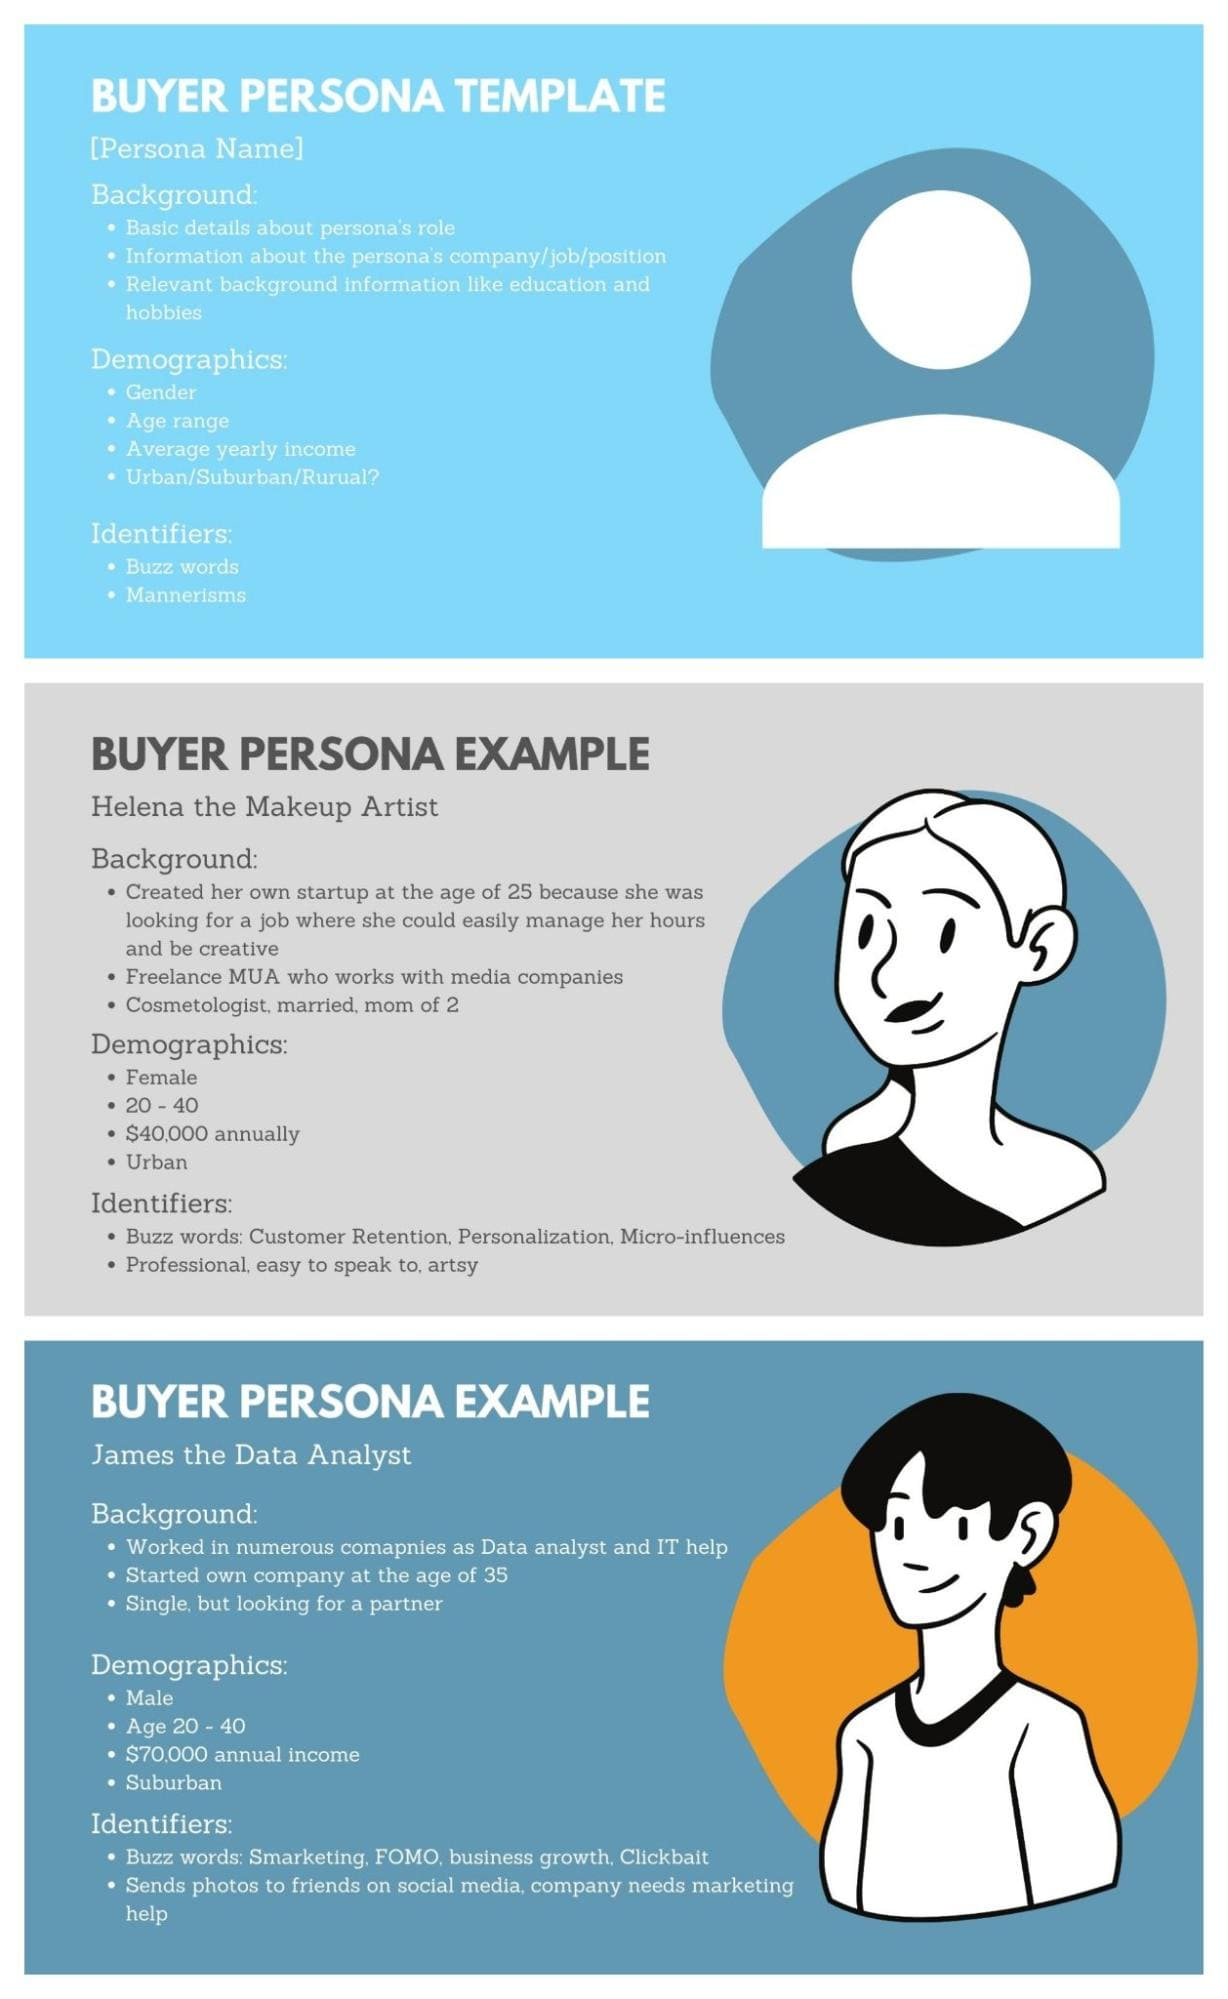 Template of a buyer persona with examples